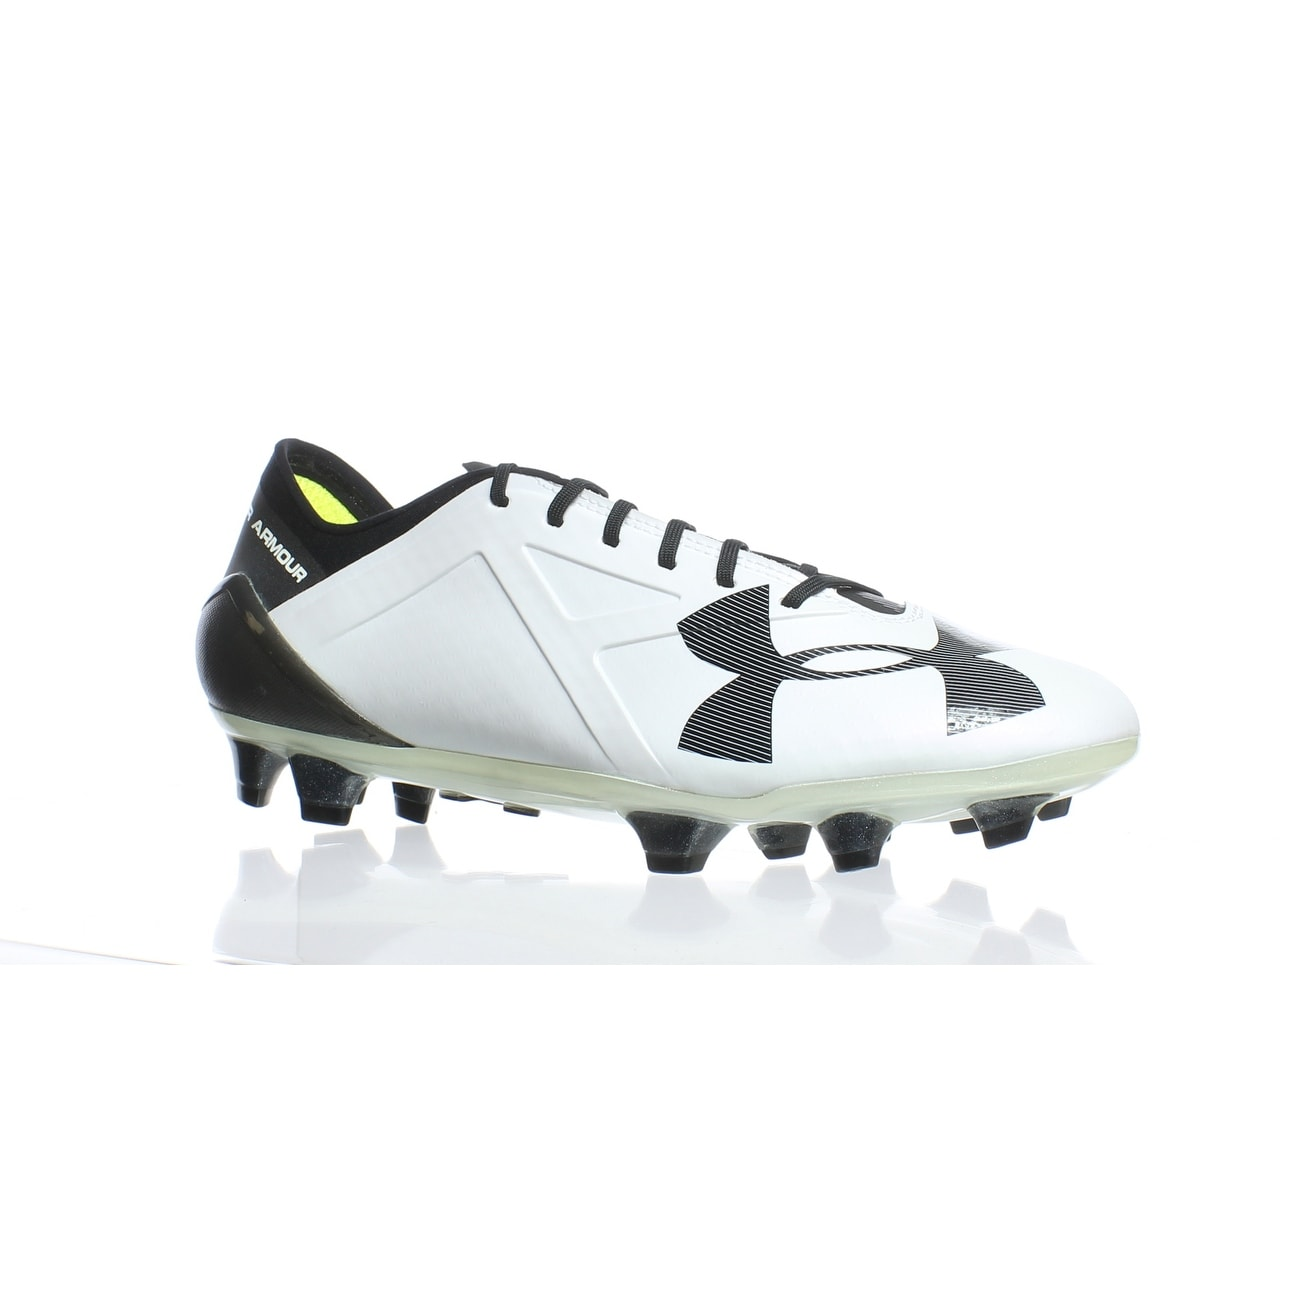 Shop Under Armour Mens Spotlight White Black Soccer Cleats Size 8 ... fadb72230